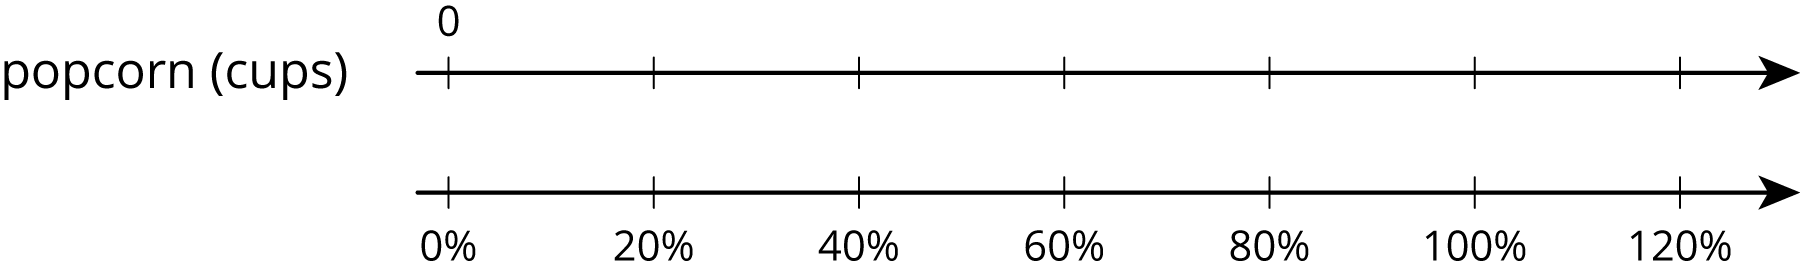 """A double number line for """"popcorn in cups"""" with 7 evenly spaced tick marks. On the top number line the number zero is on the first tick mark and the remaining tick marks are not labeled. The bottom number line, starting with the first tick mark, zero percent, 20 percent, 40 percent, 60 percent, 80 percent, 100 percent, and 120 percent are labeled."""